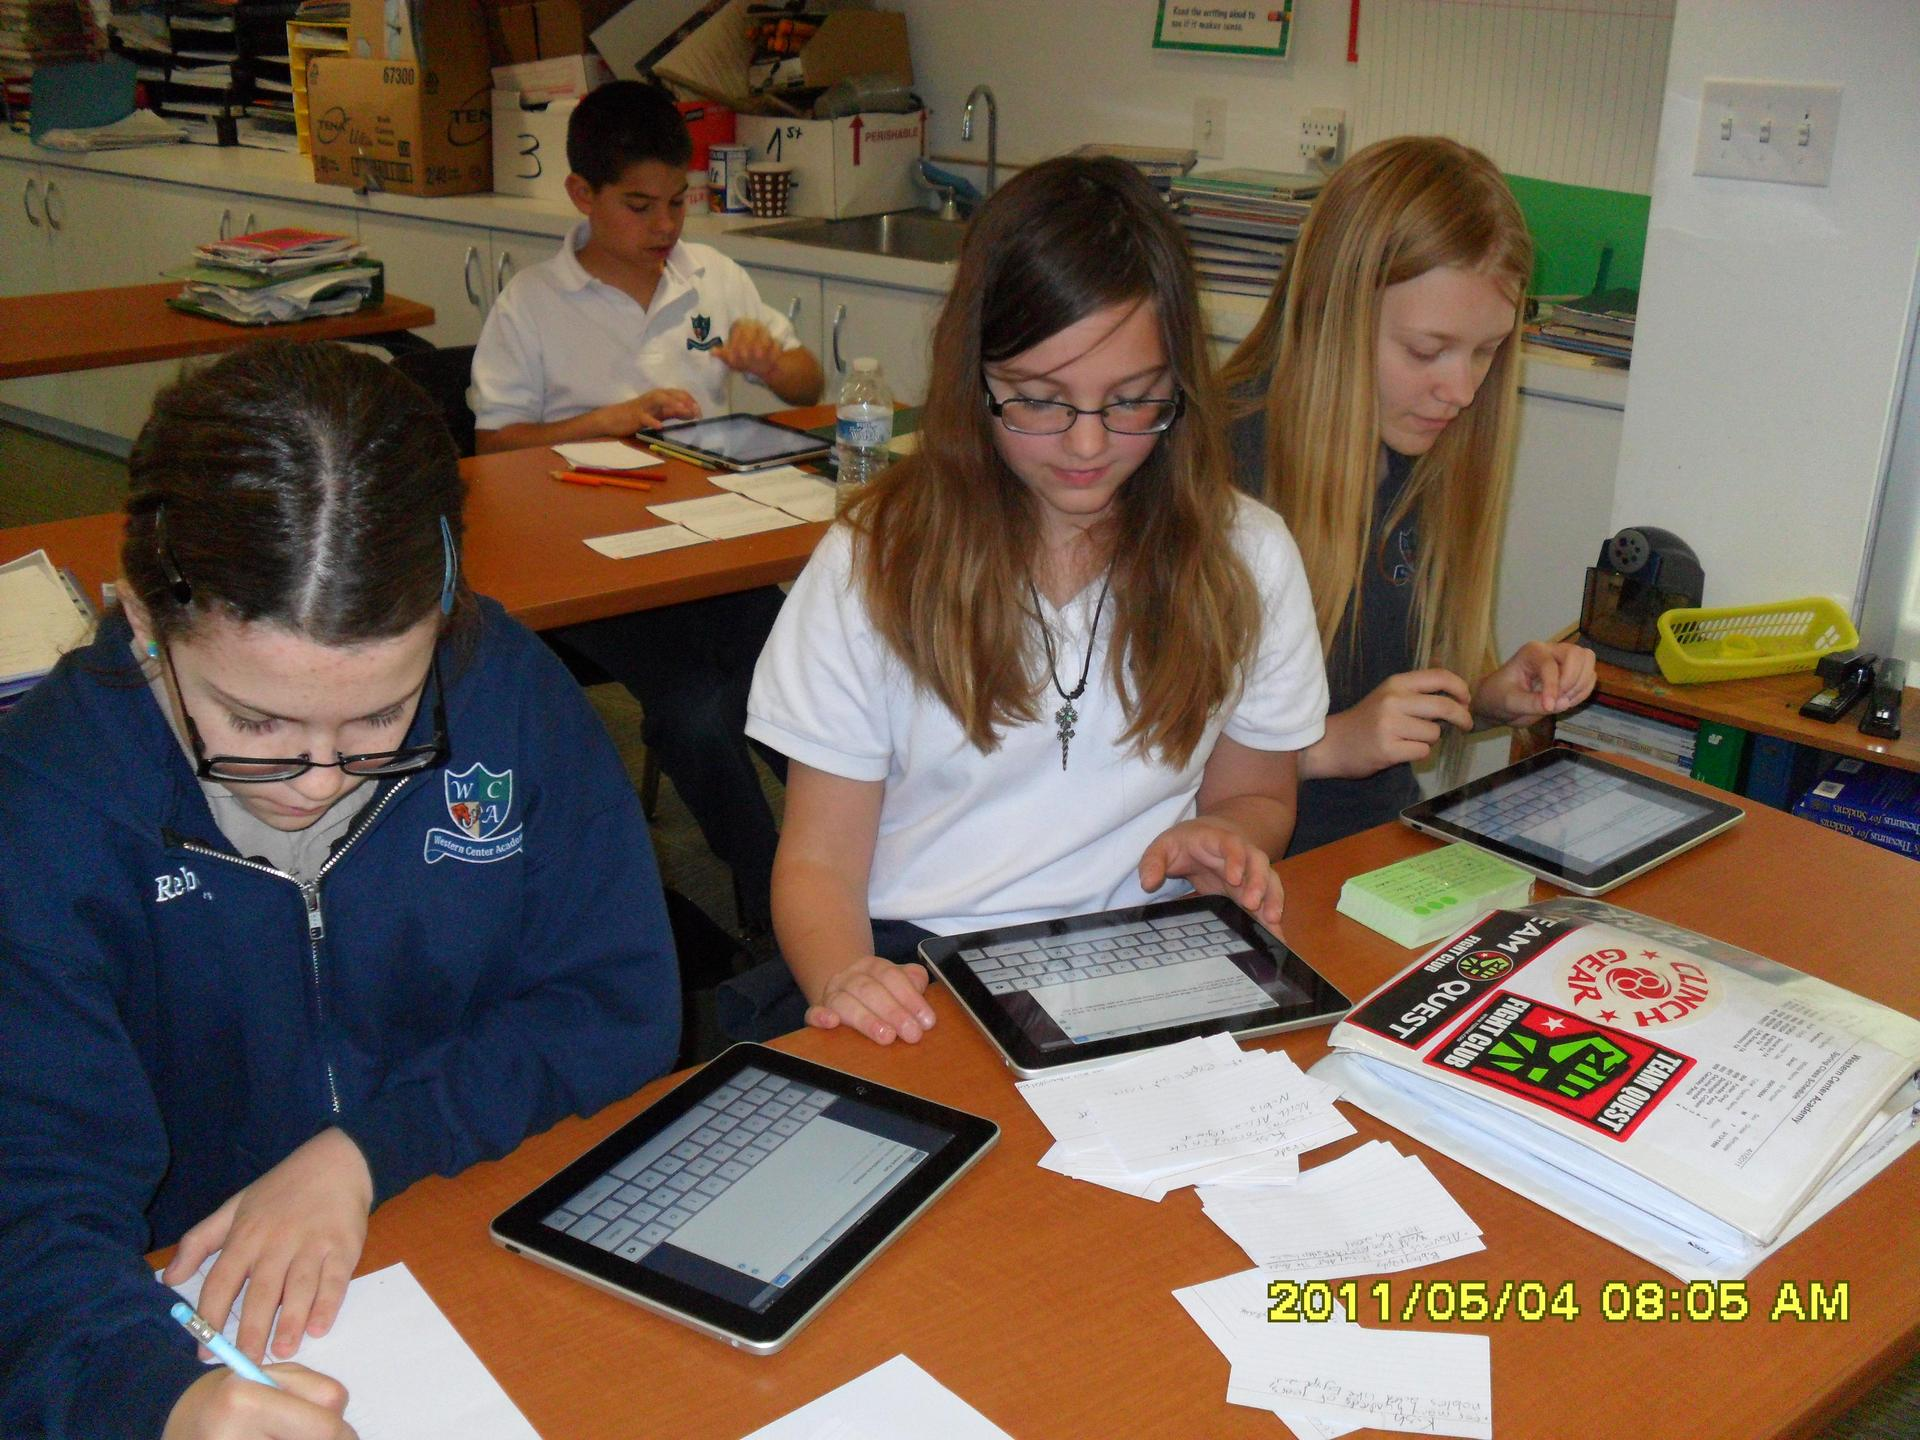 Students in lab class working on iPads